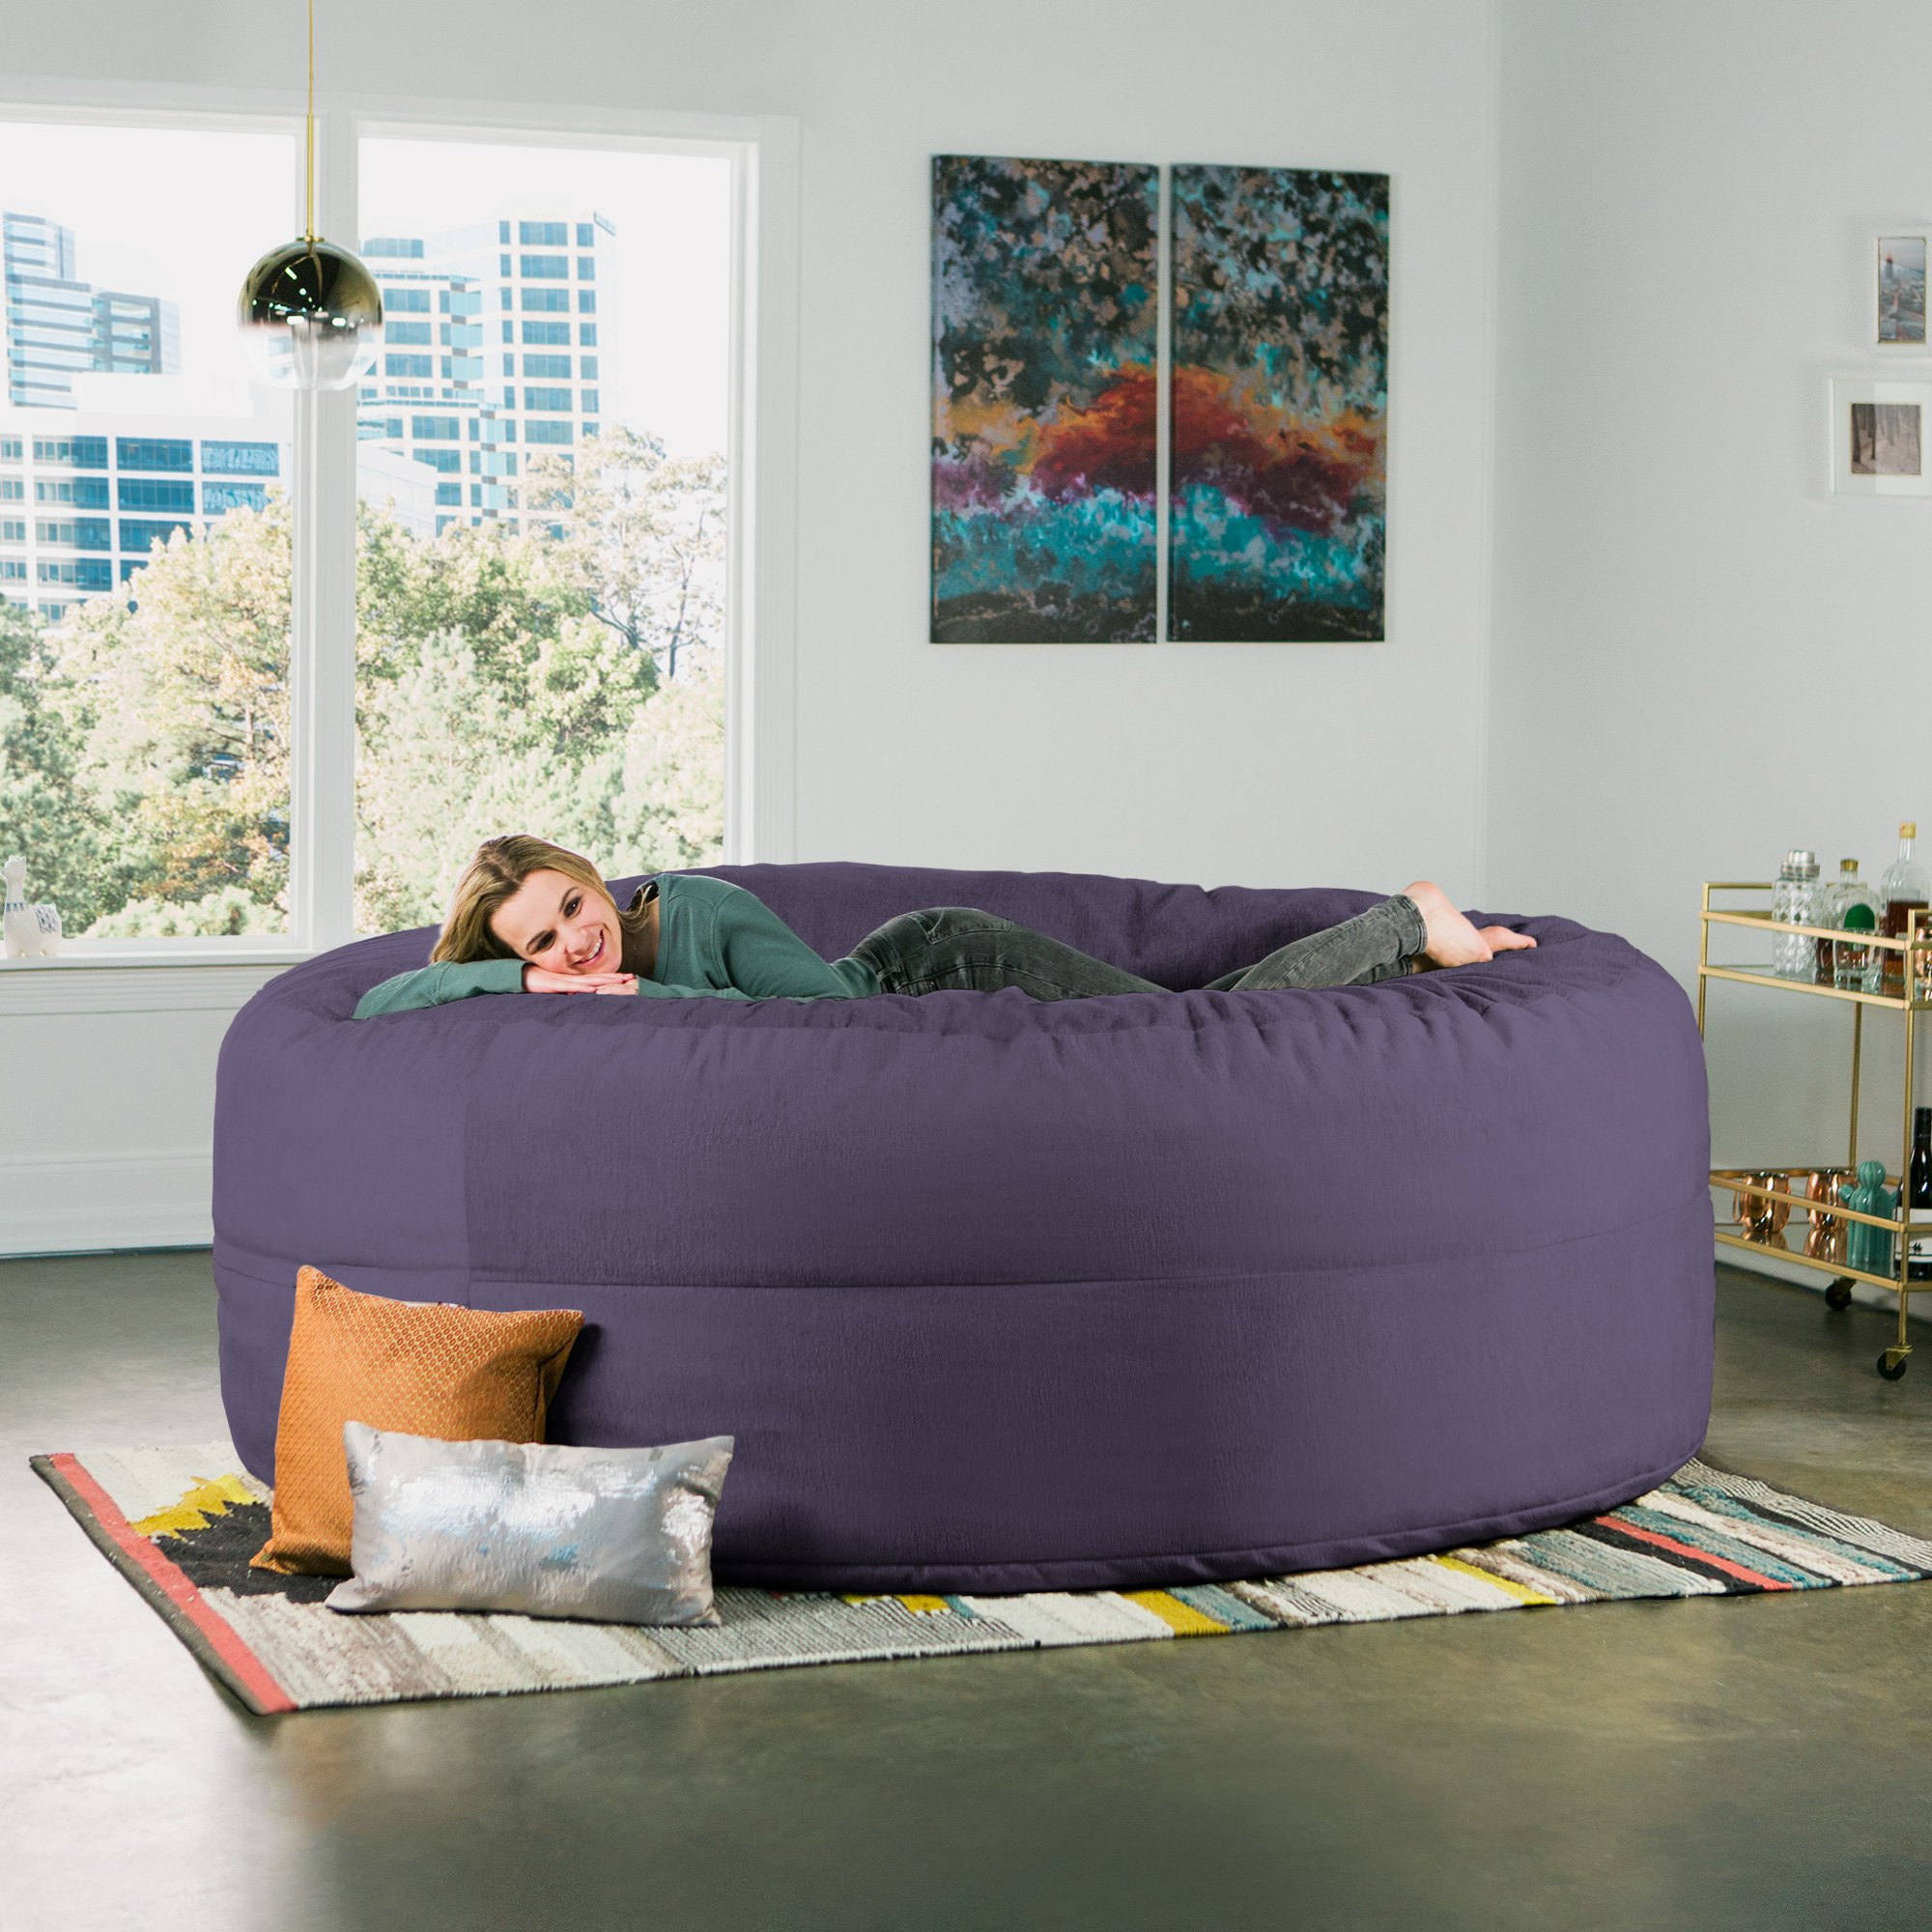 Jaxx Cocoon 8 Foot Huge Sleeper Bean Bag Bed - Chenille, Plum